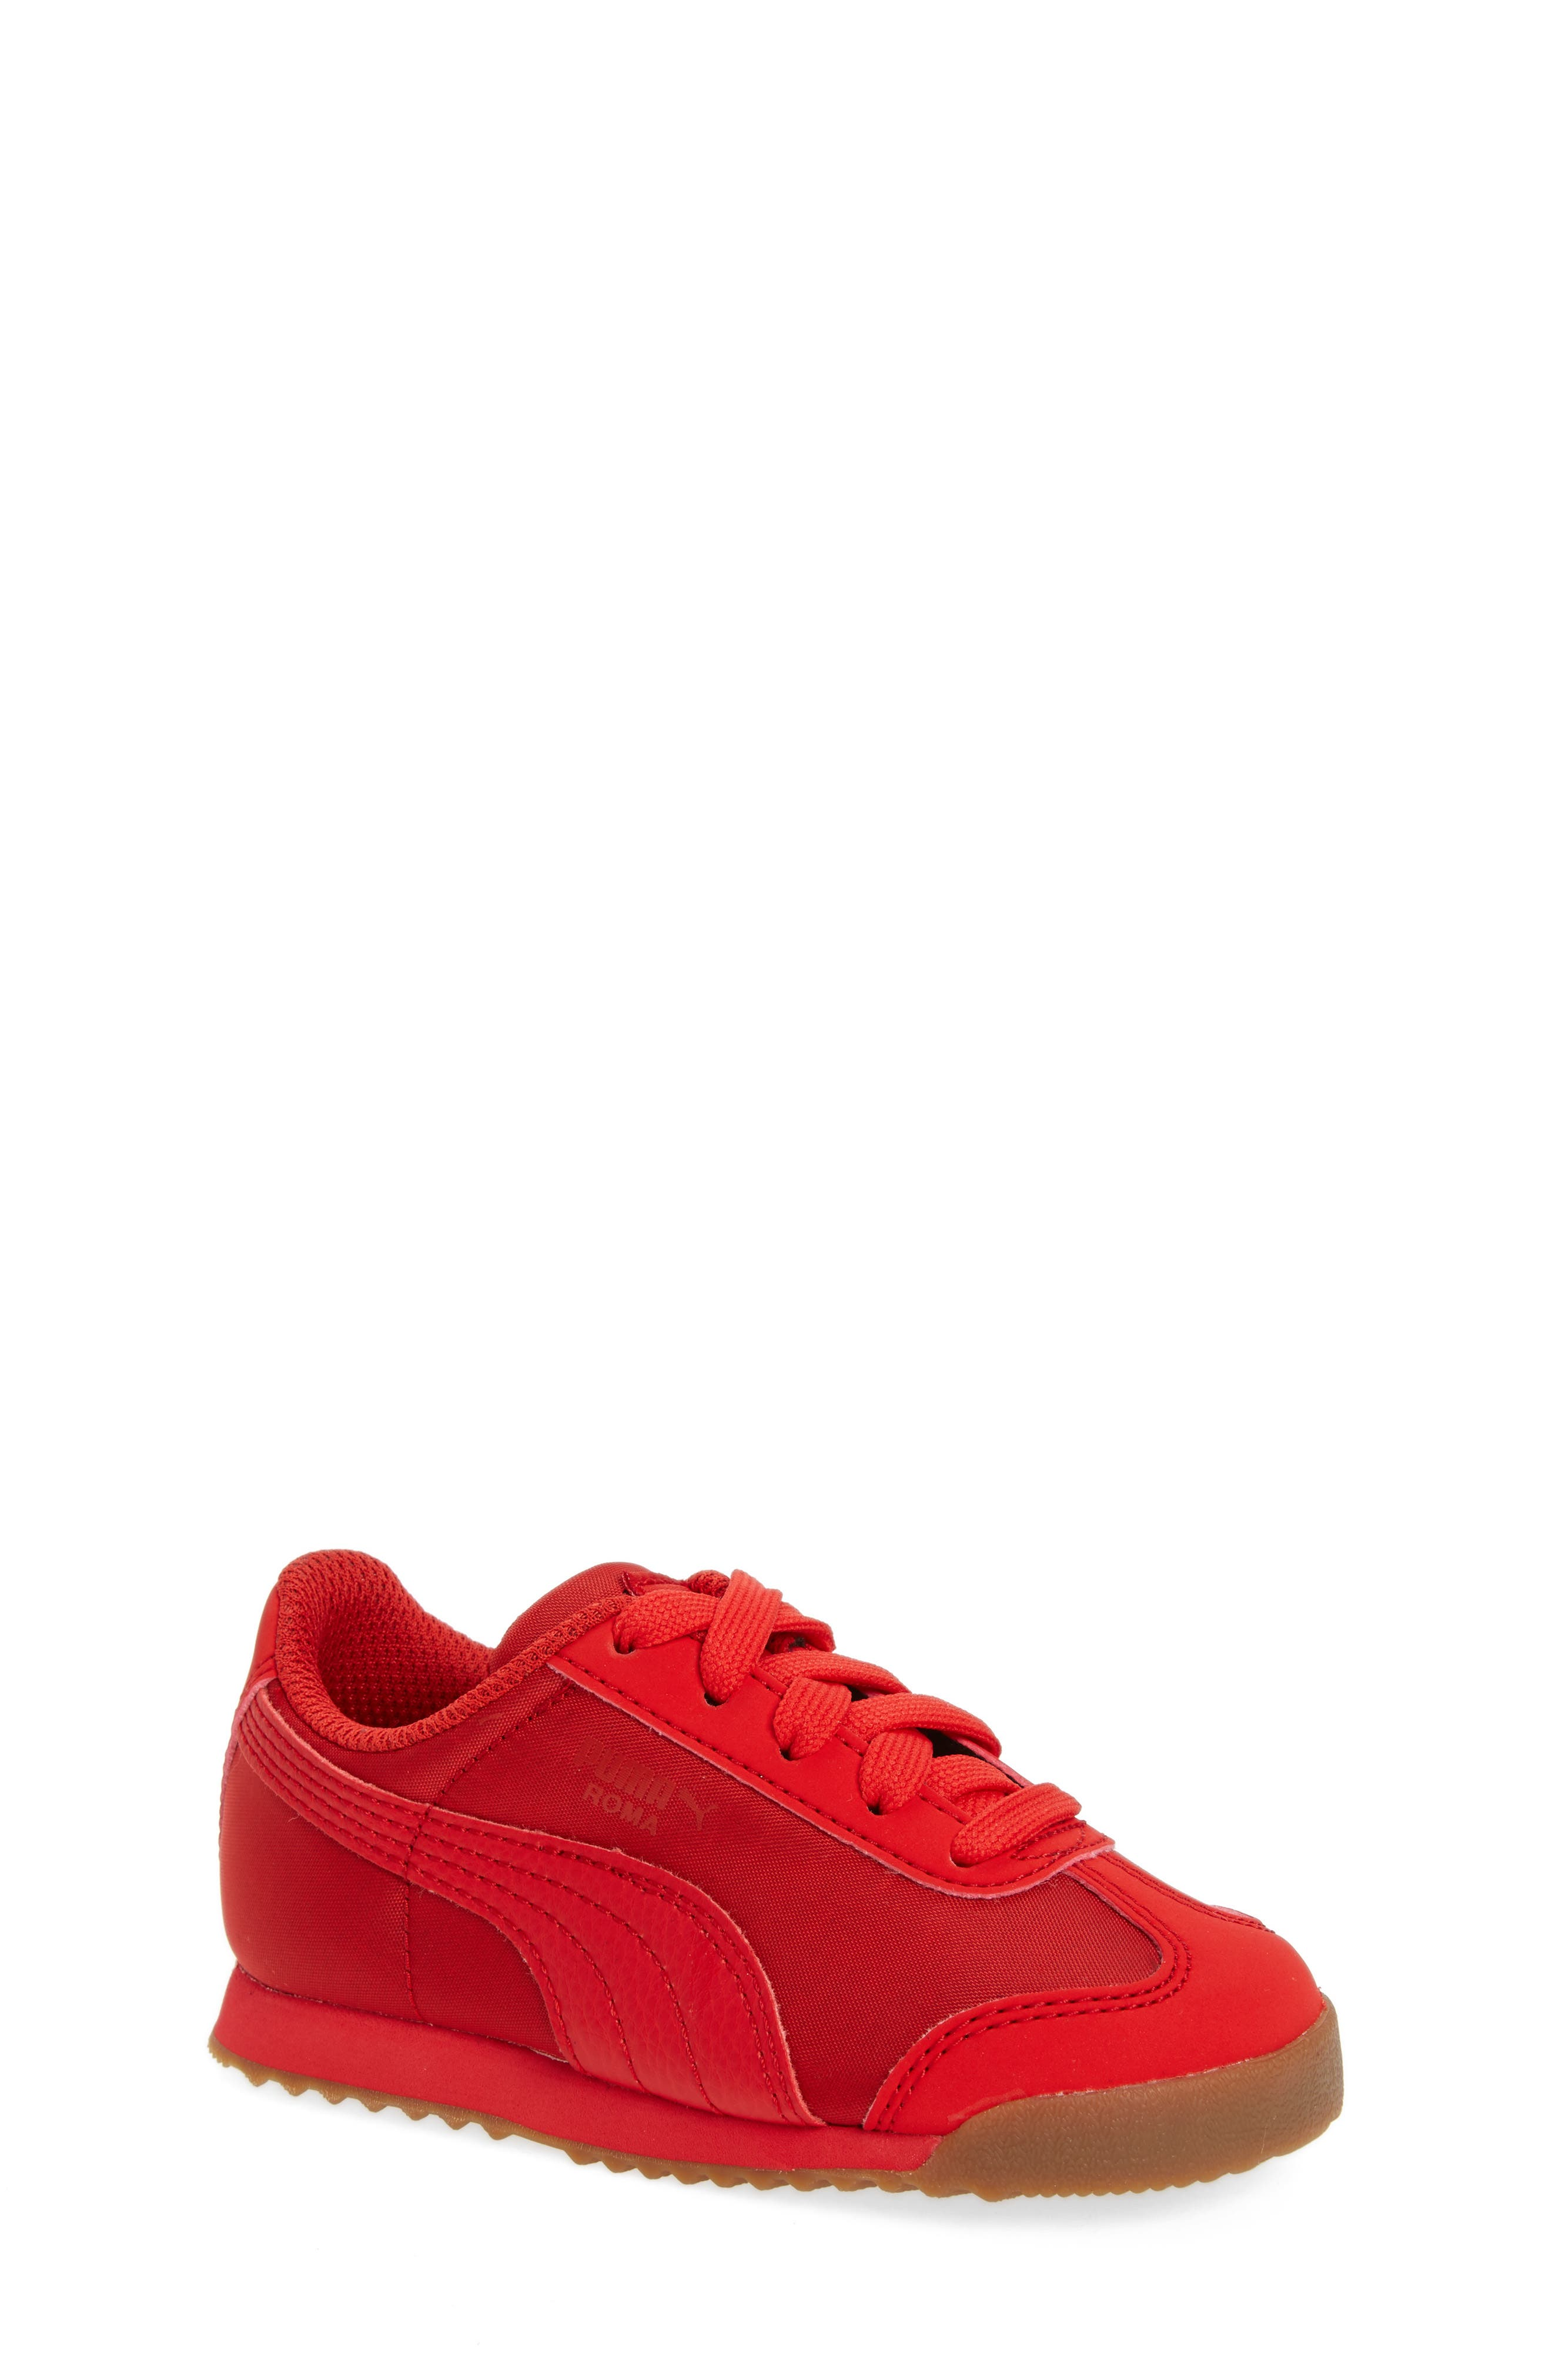 Roma Basic Summer Sneaker,                             Main thumbnail 2, color,